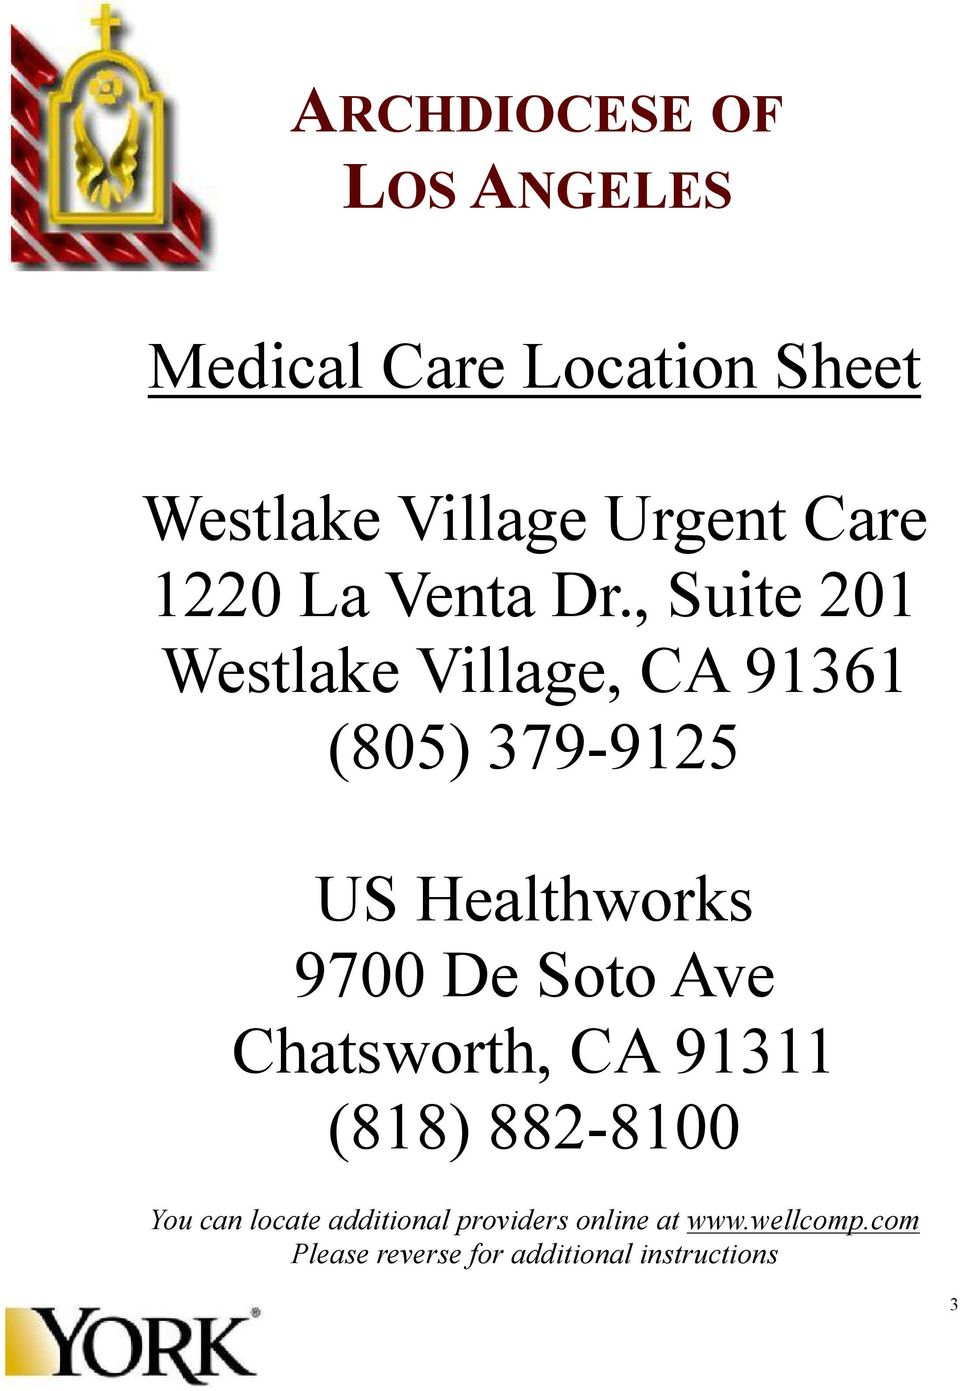 , Suite 201 Westlake Village, CA 91361